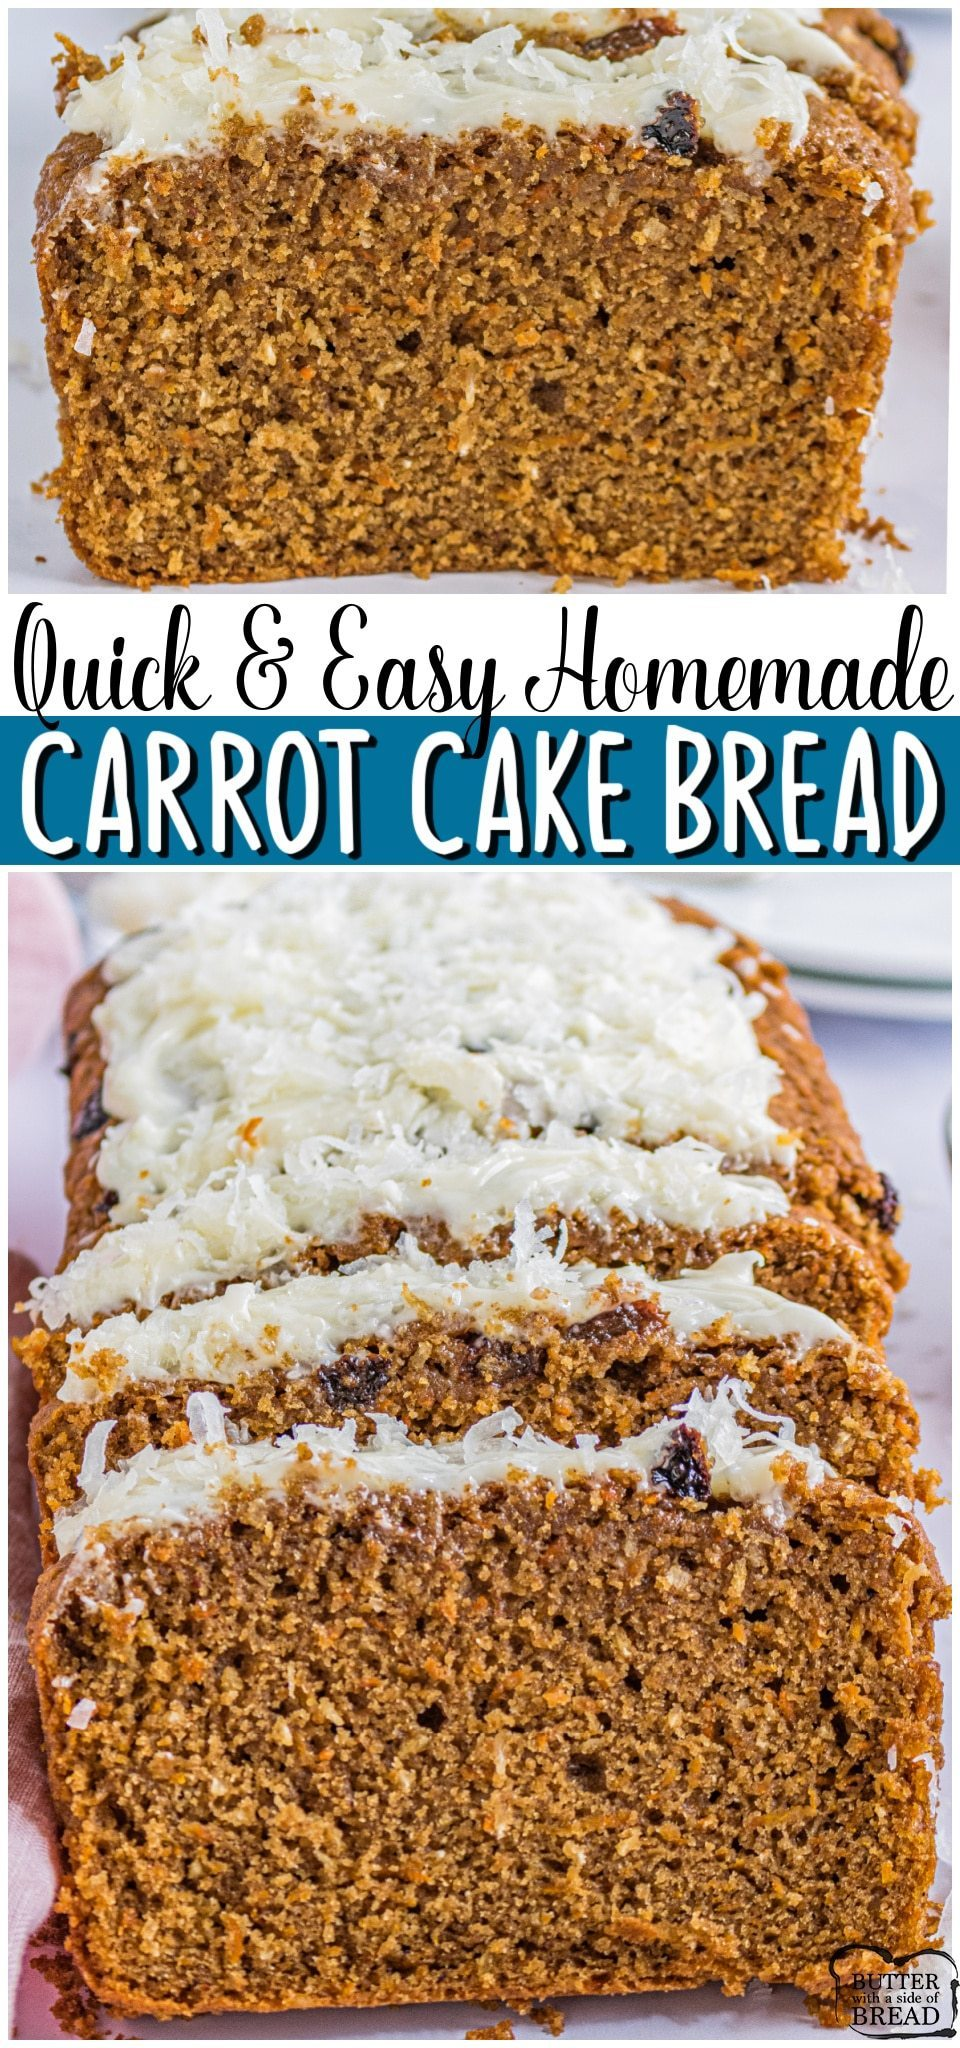 Carrot cake bread is everything you love about Carrot Cake in bread form! Spiced sweet bread with coconut & raisins, topped with a lovely cream cheese frosting.